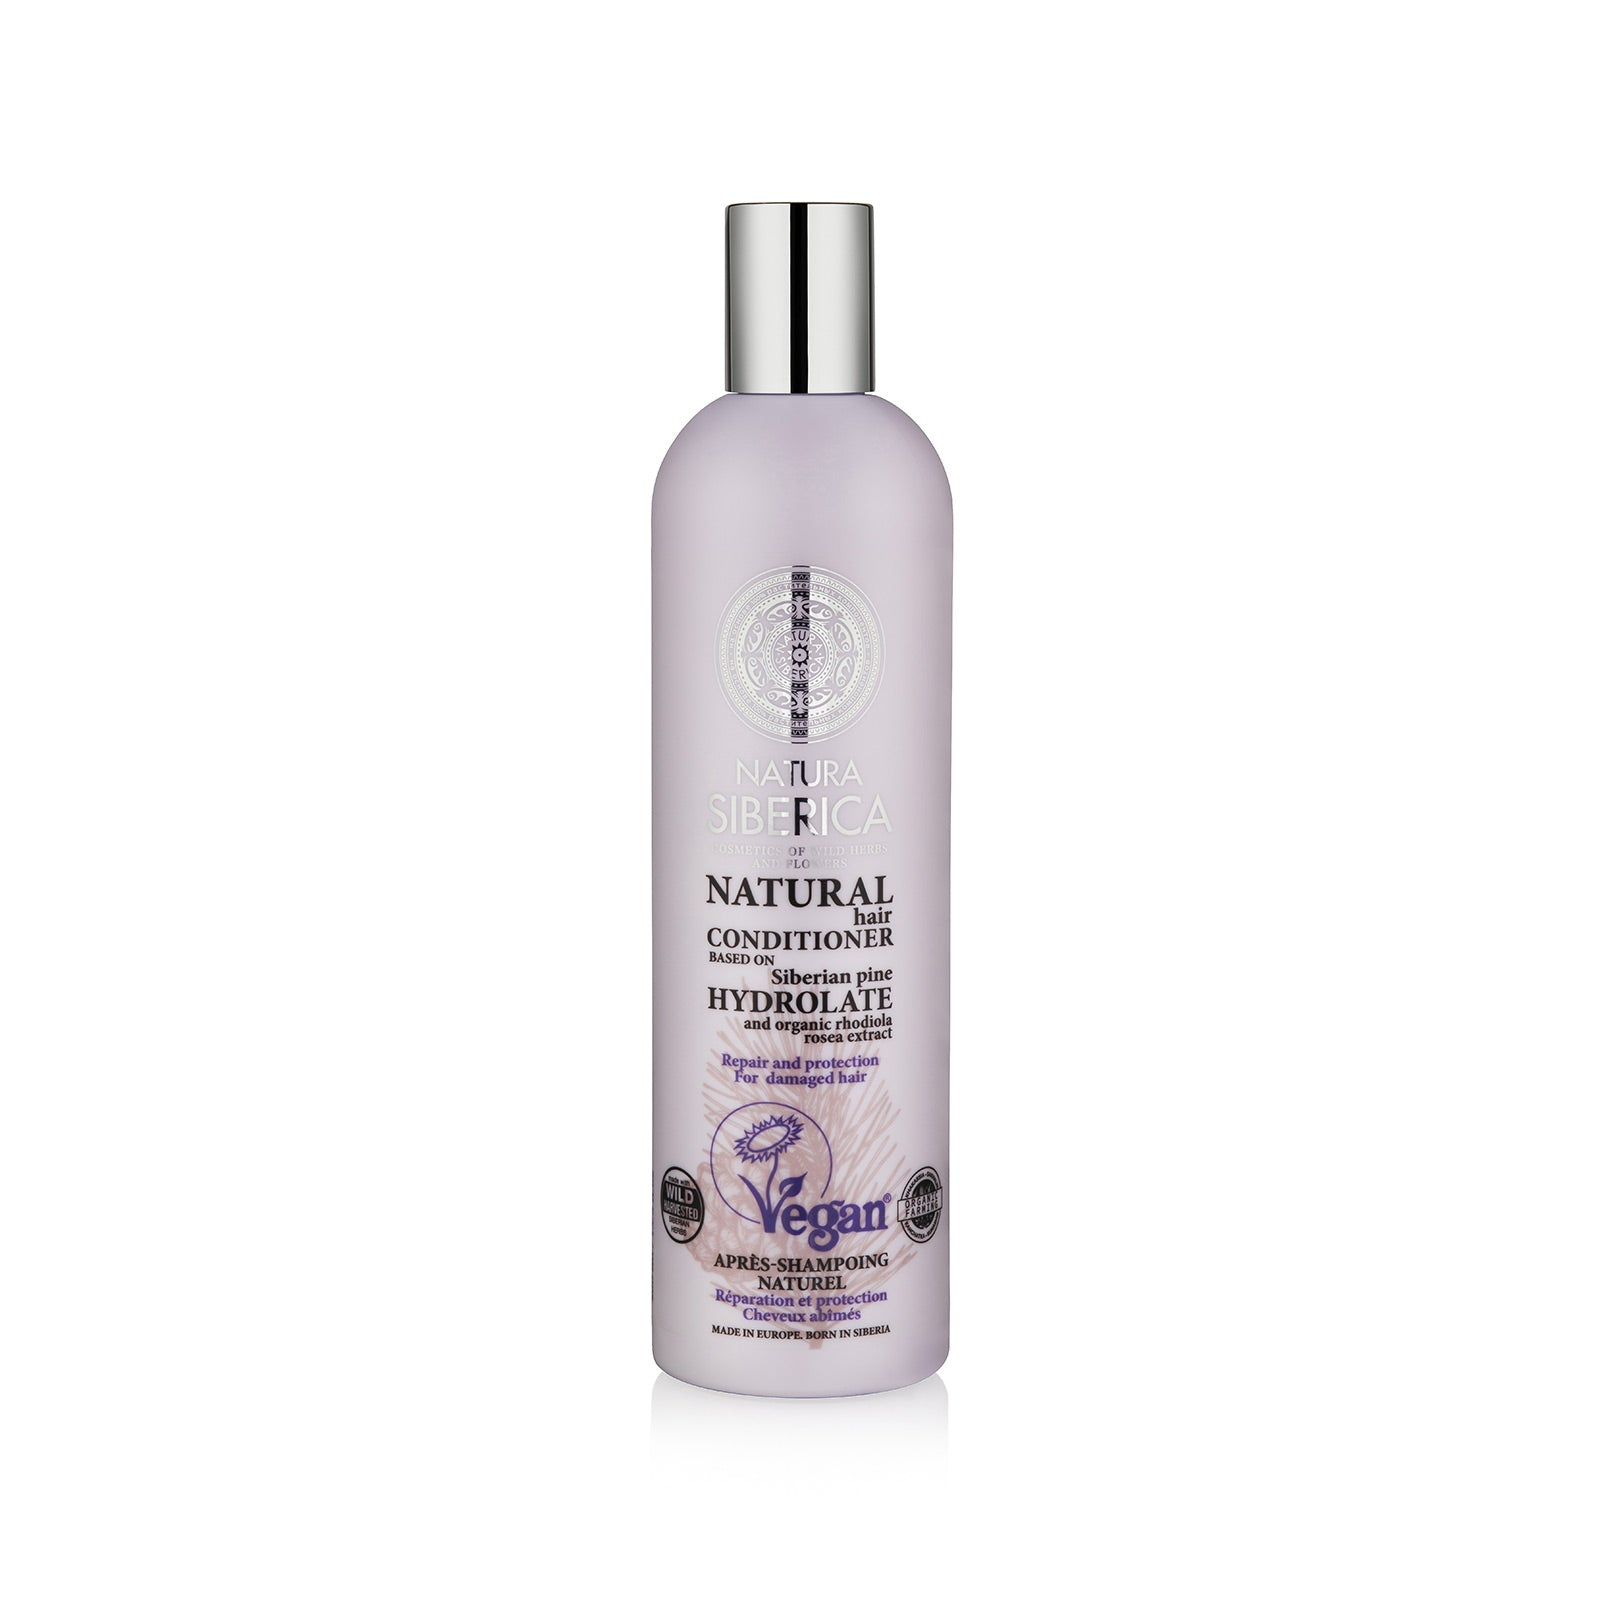 Repair and Protection Conditioner. For damaged hair, 400 ml